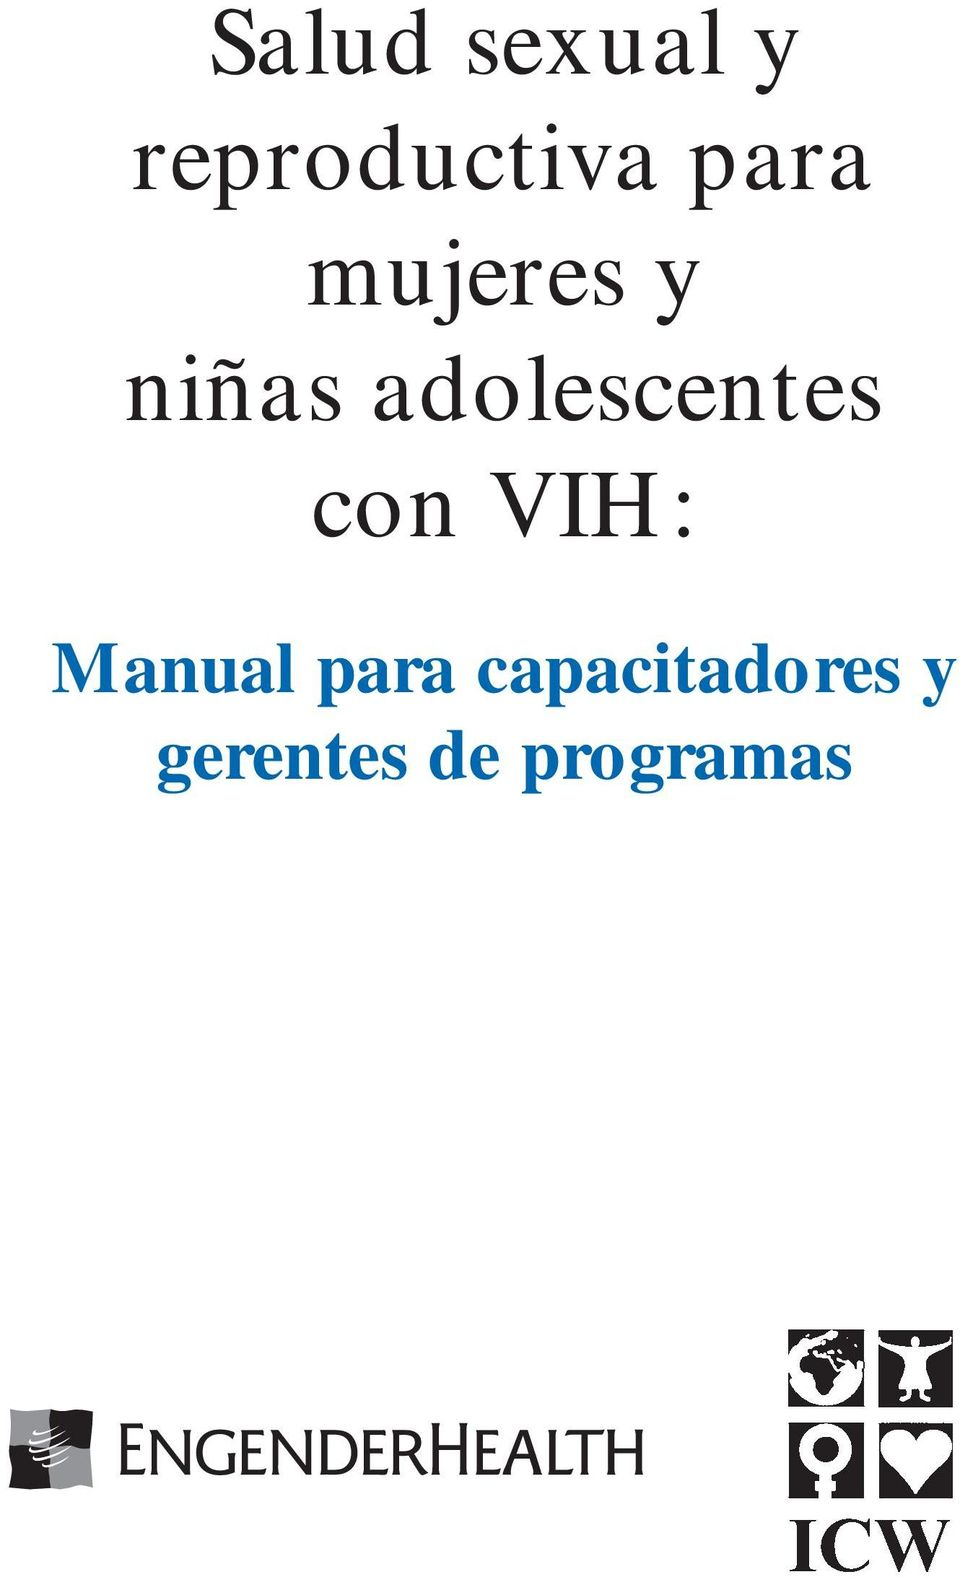 adolescentes con VIH: Manual